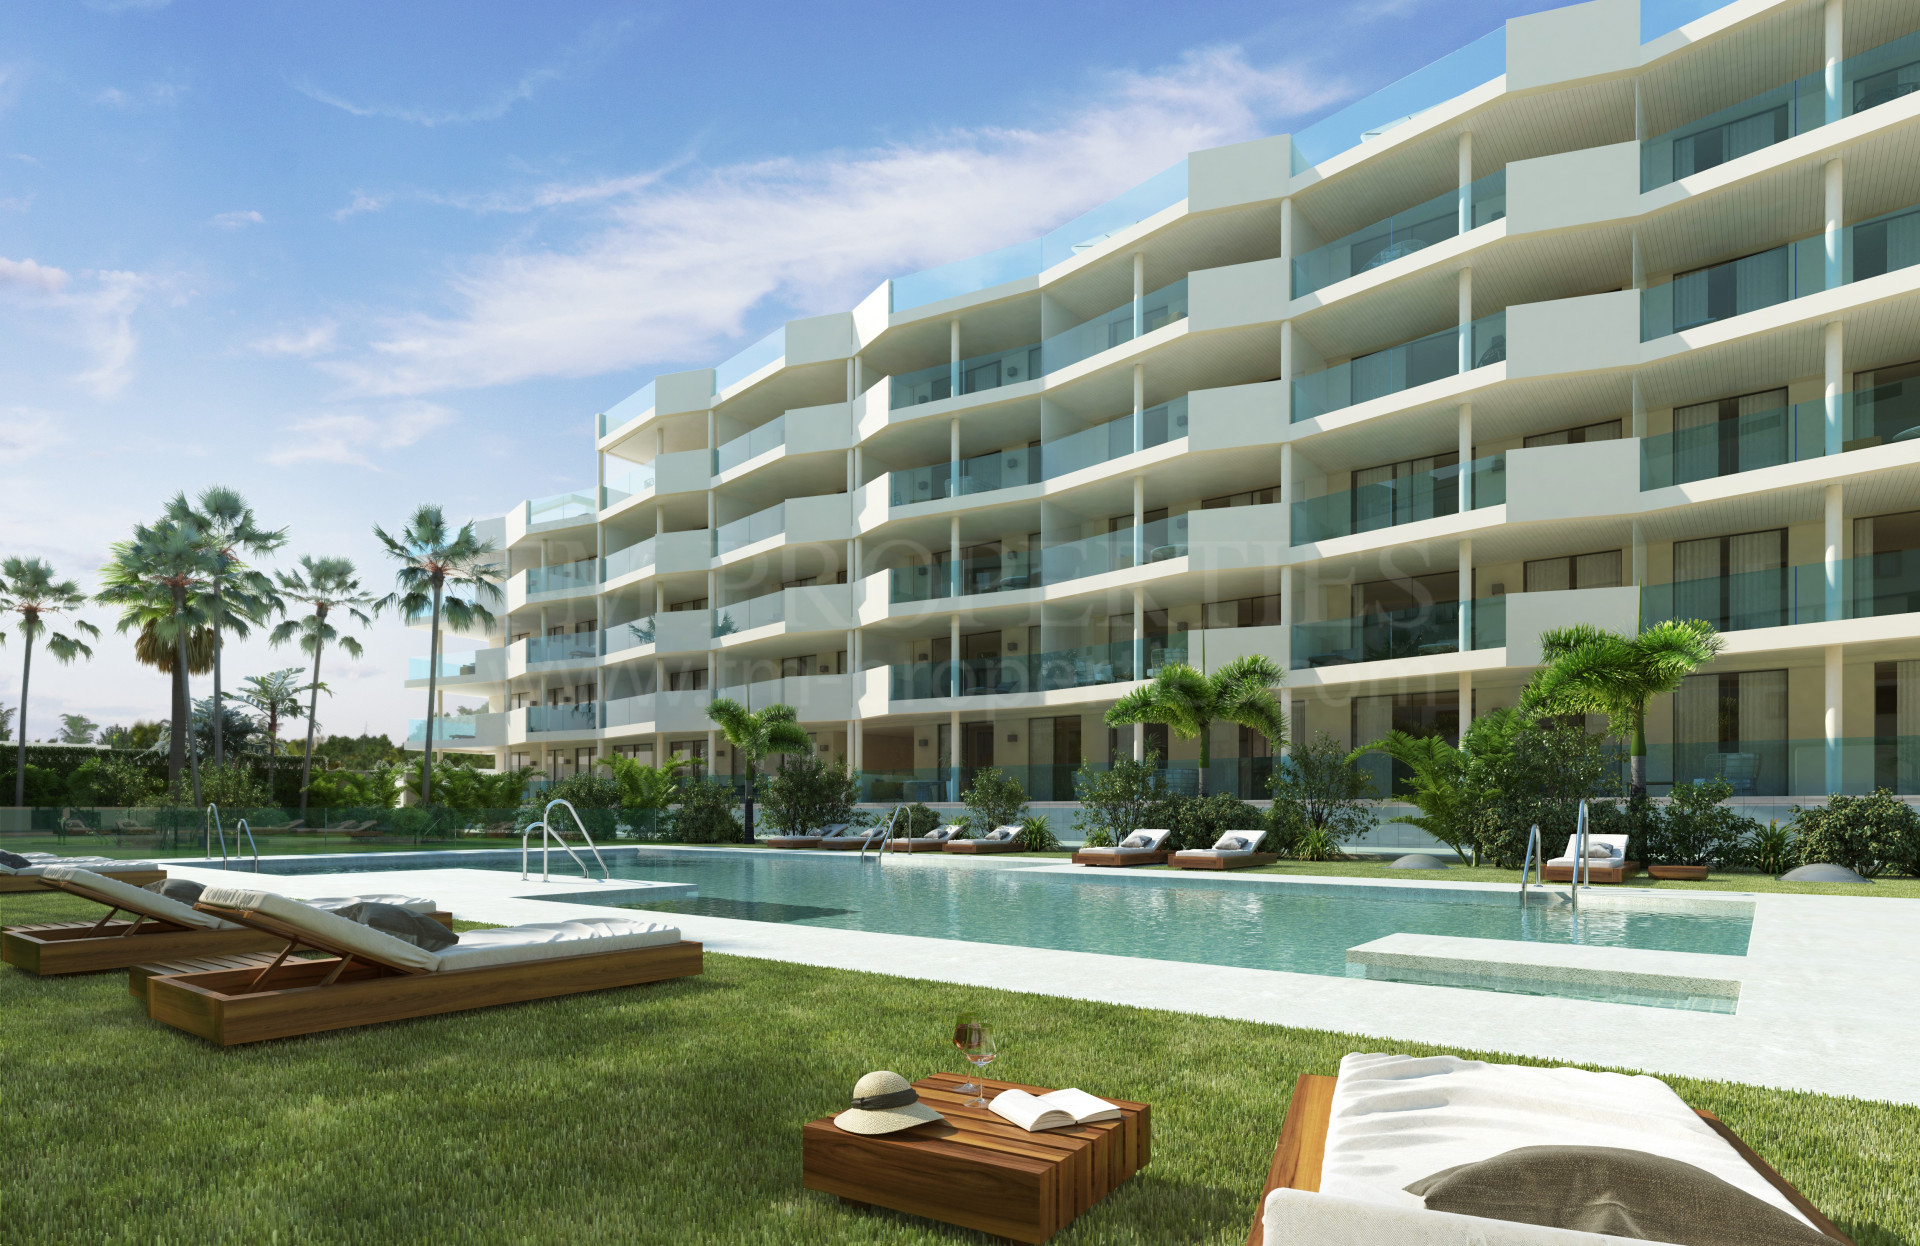 Photo Gallery - Innovative and elegant promotion of 1, 2 and 3 bedroom apartments and penthouses in Fuengirola